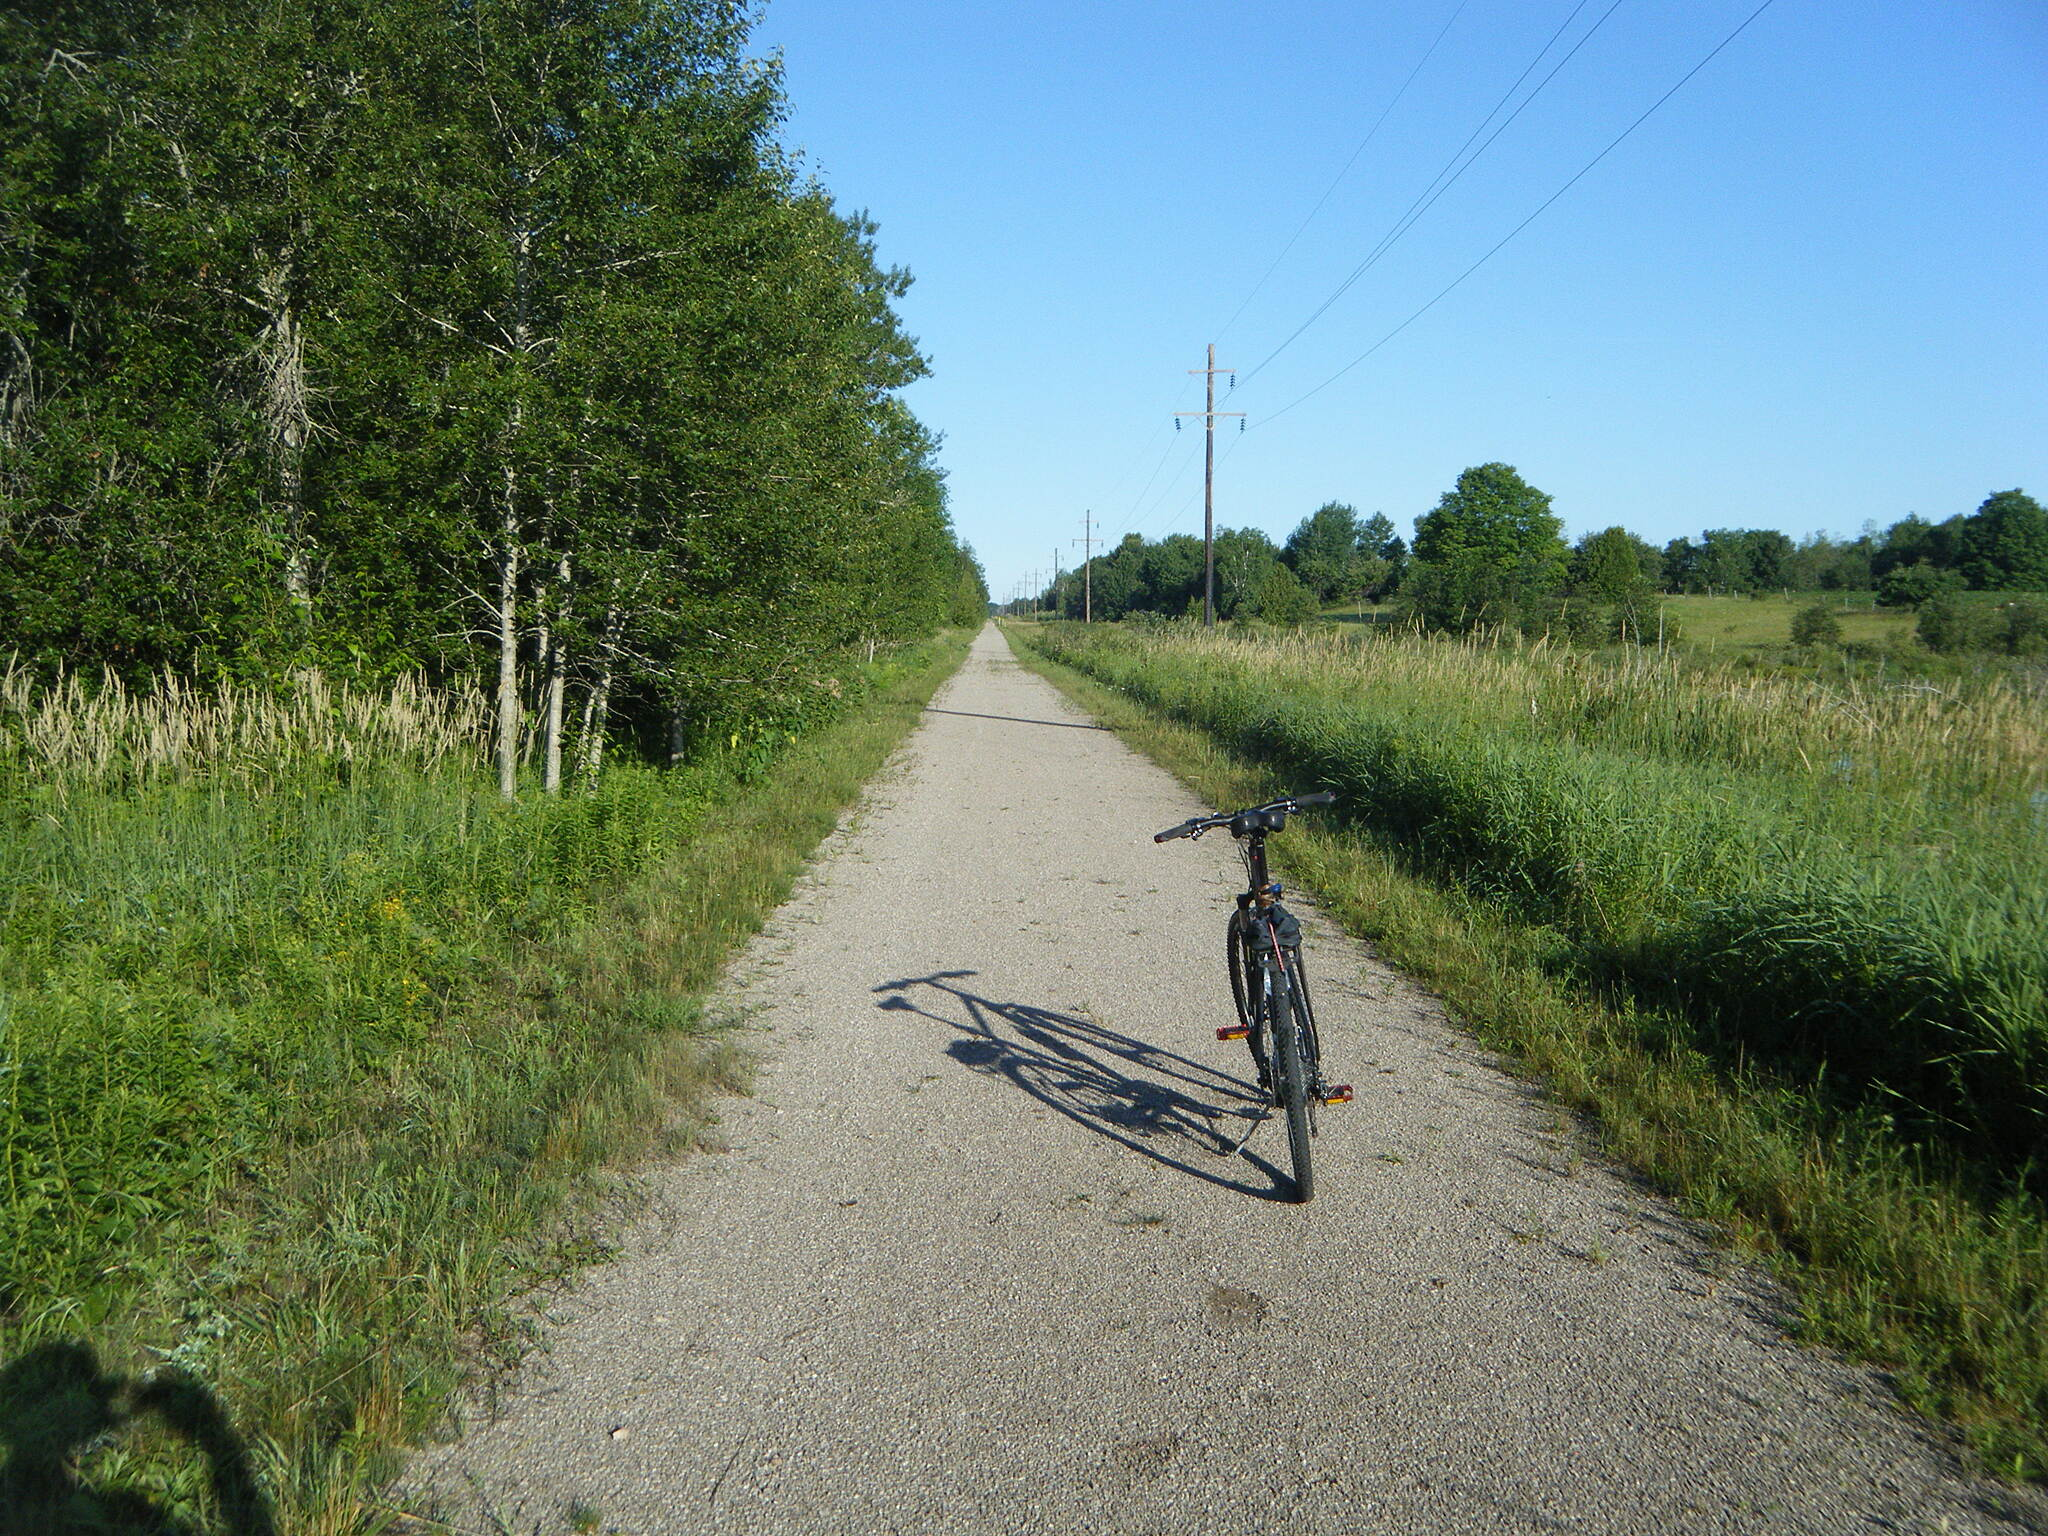 North Eastern State Trail West of Posen Beautiful July day.  Saw lot's of Deer, great ride from Posen to Millersburg.